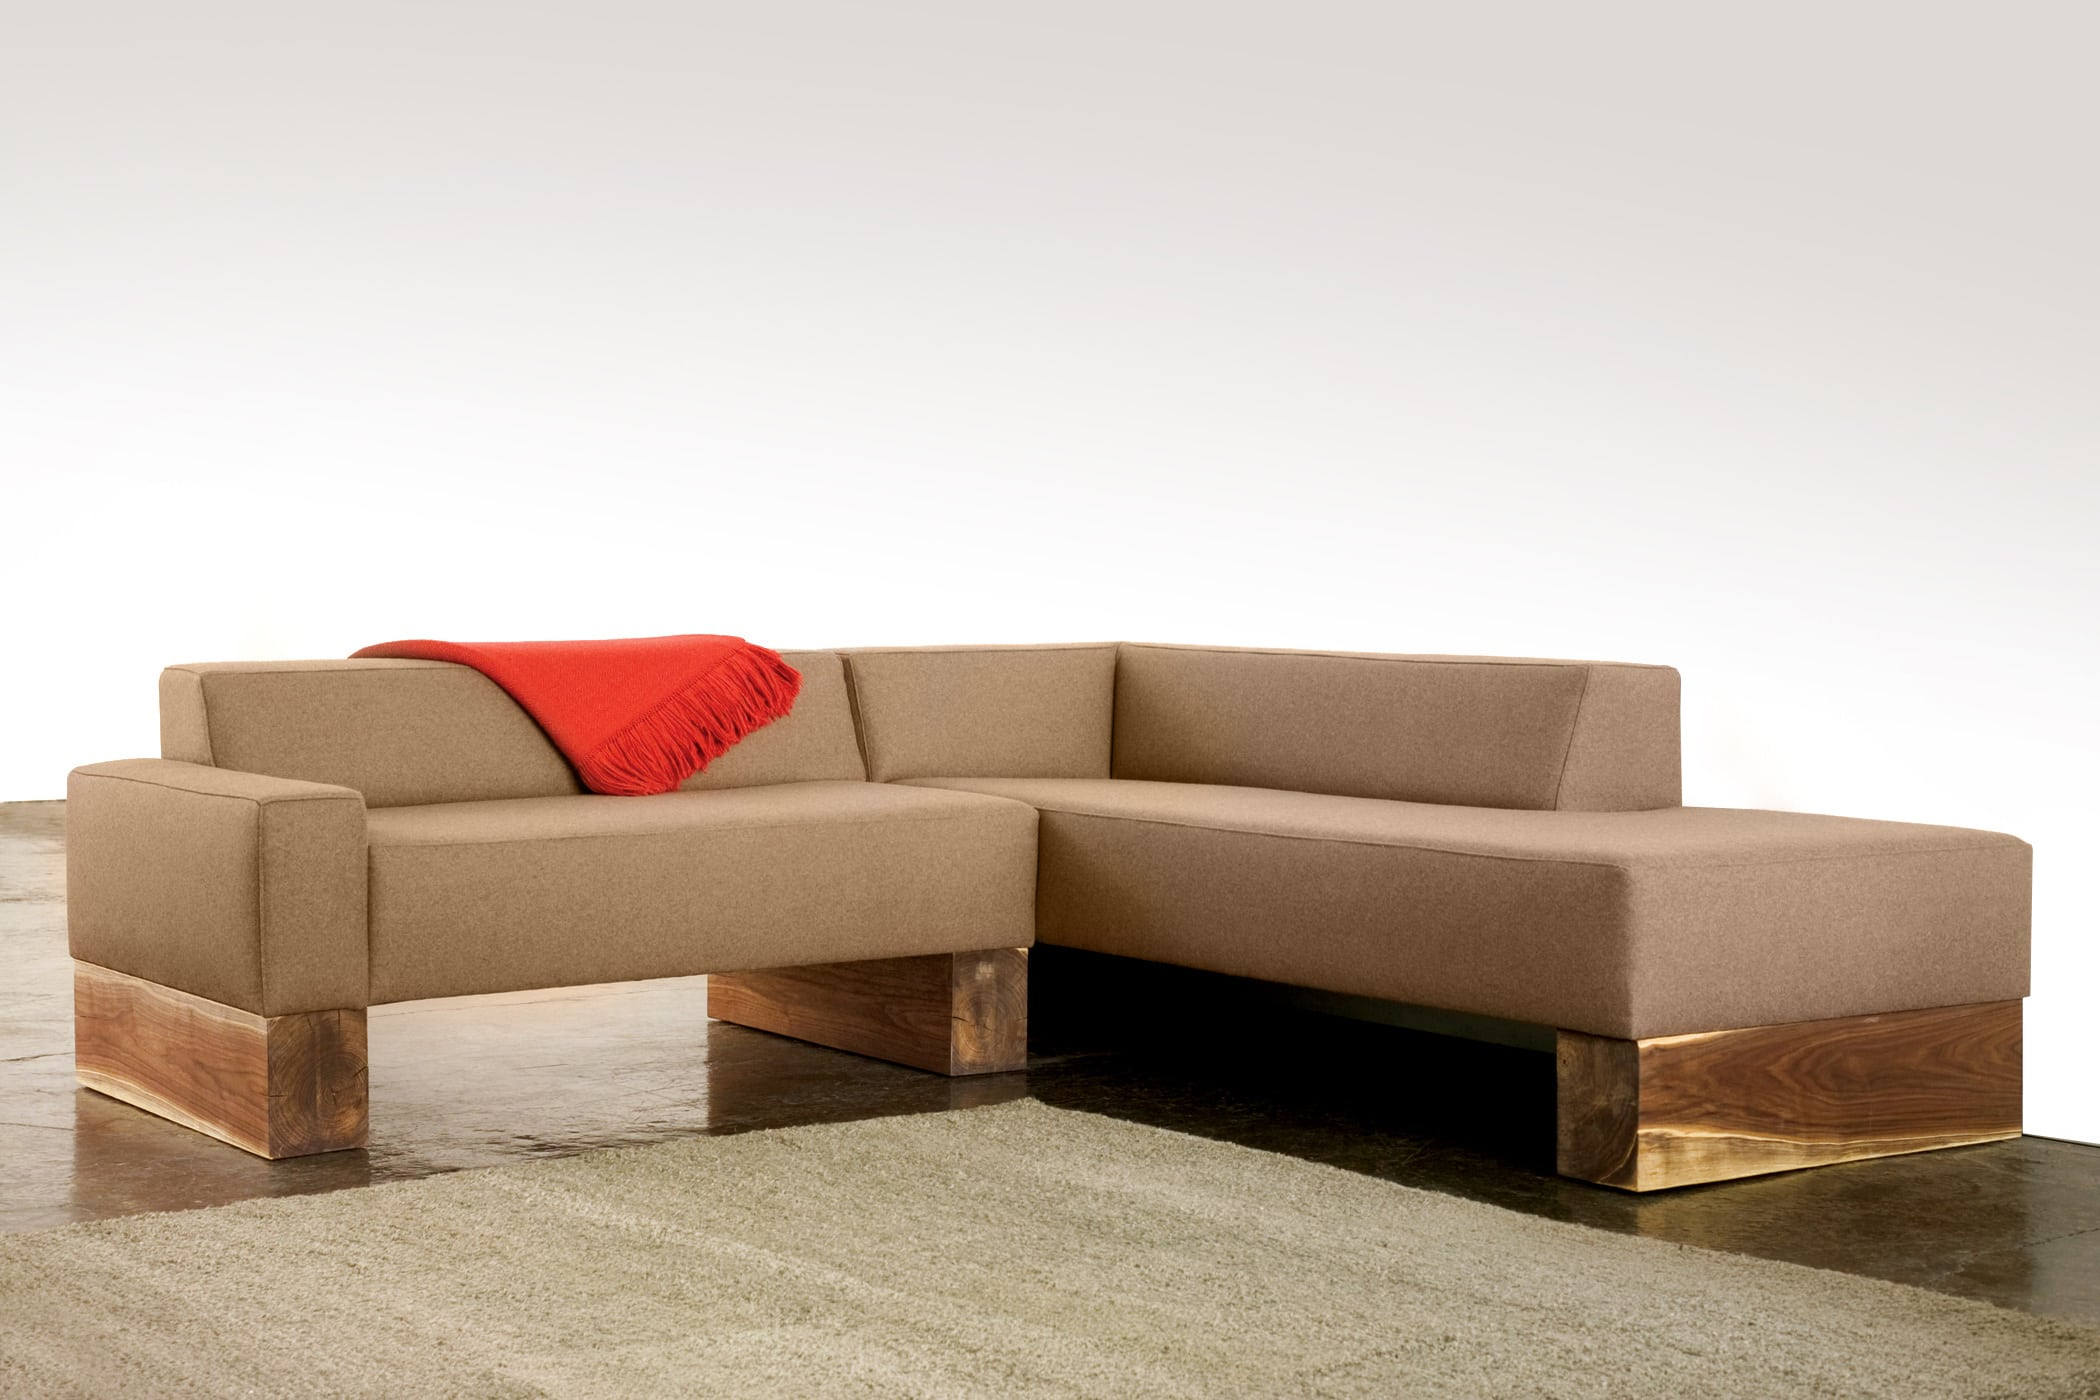 Beam Modern Sofa Collection Brooklyn Nyc Sentient